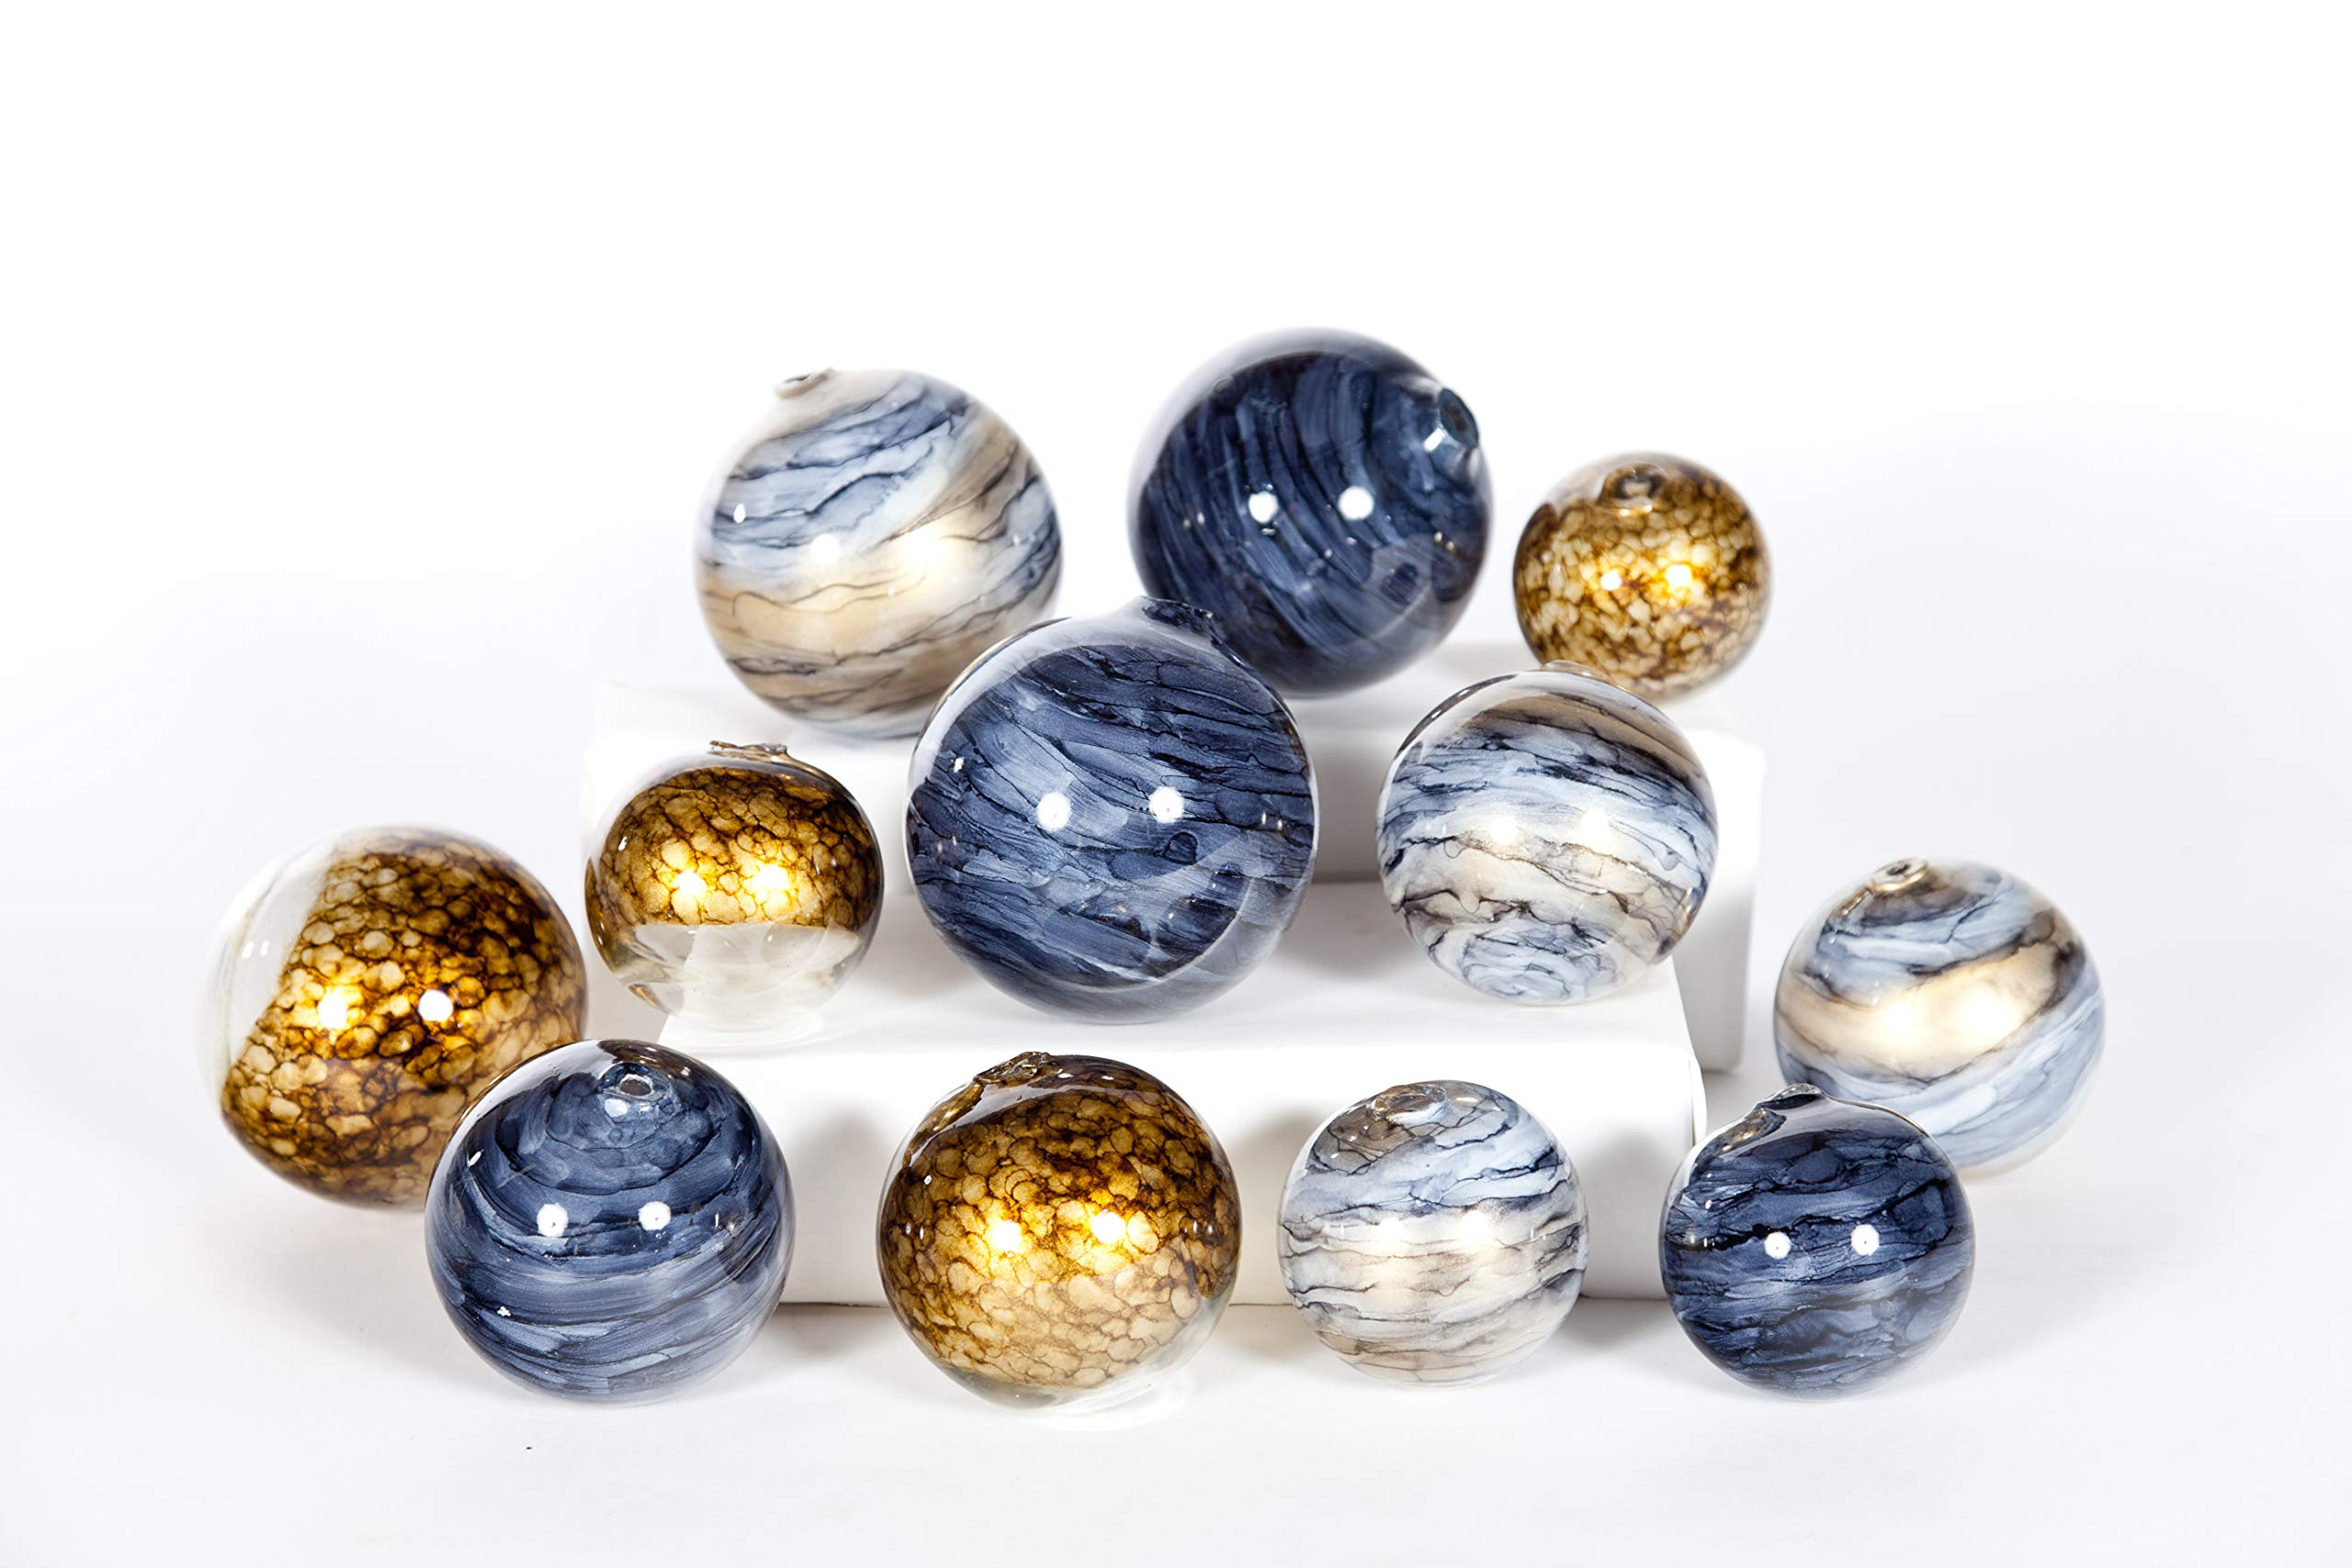 Knox and Harrison Set of 12 Decorative Hand Blown Glass Spheres by Knox and Harrison (Image #1)